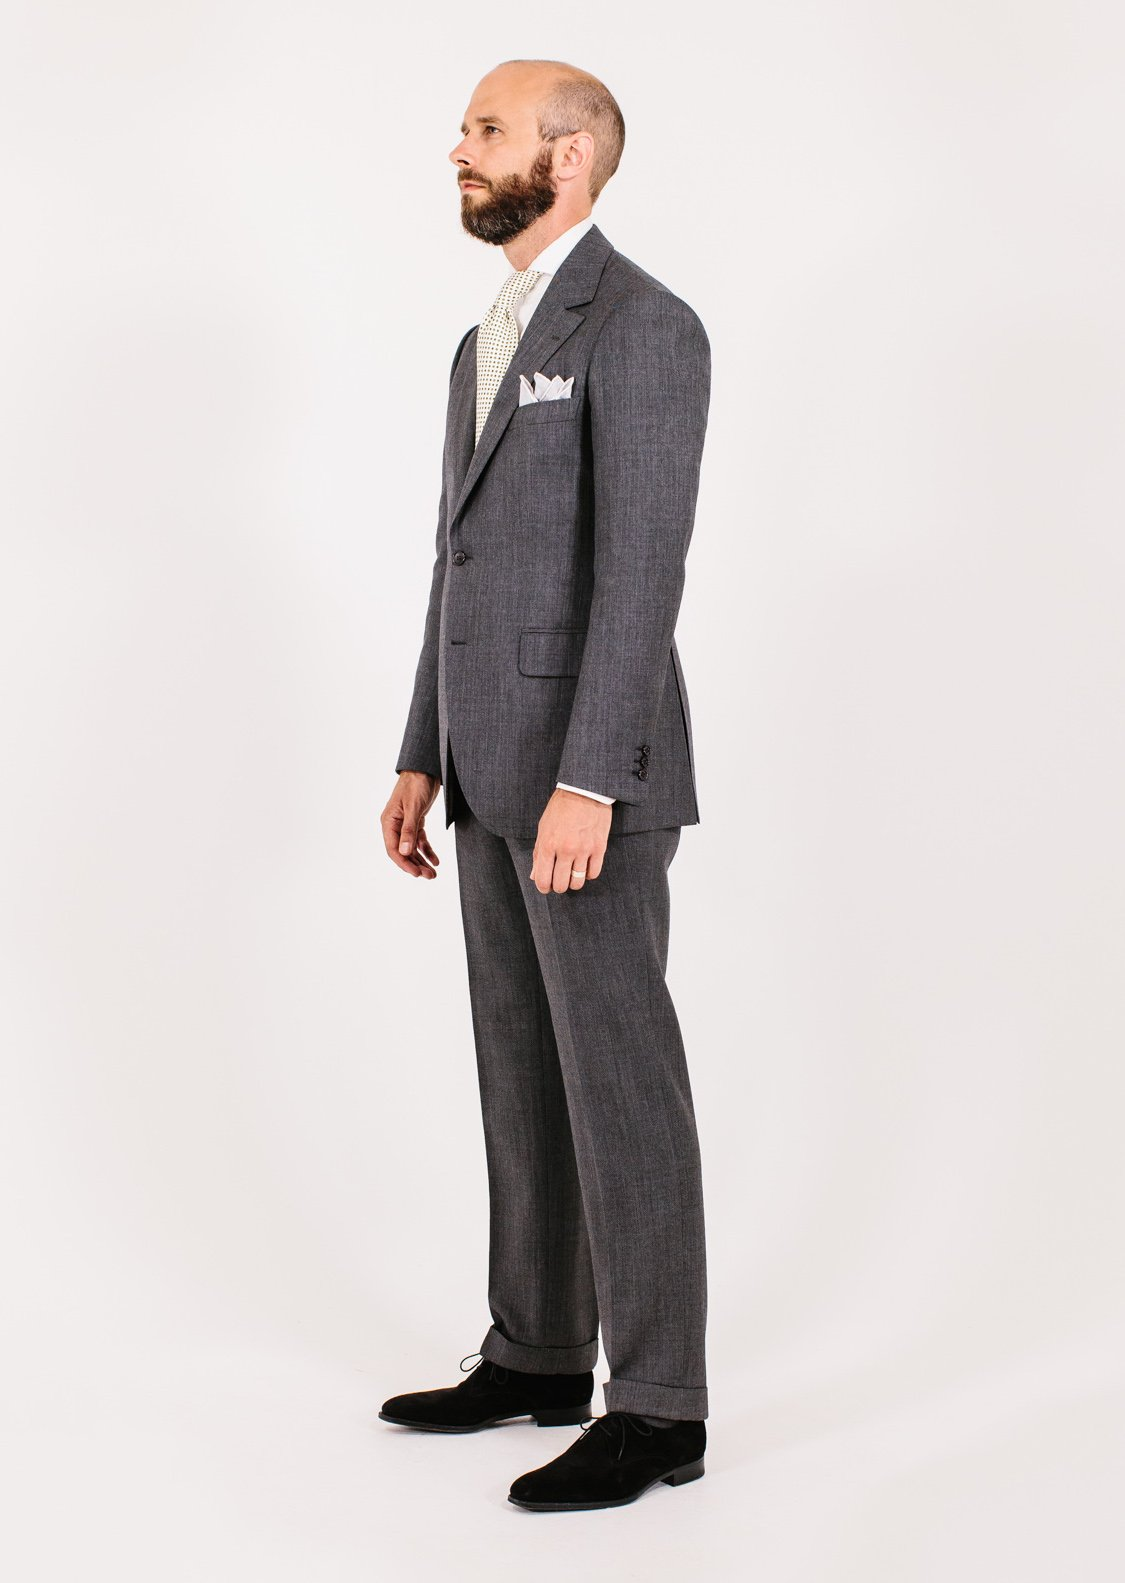 Camps de Luca pick-and-pick suit: Style Breakdown